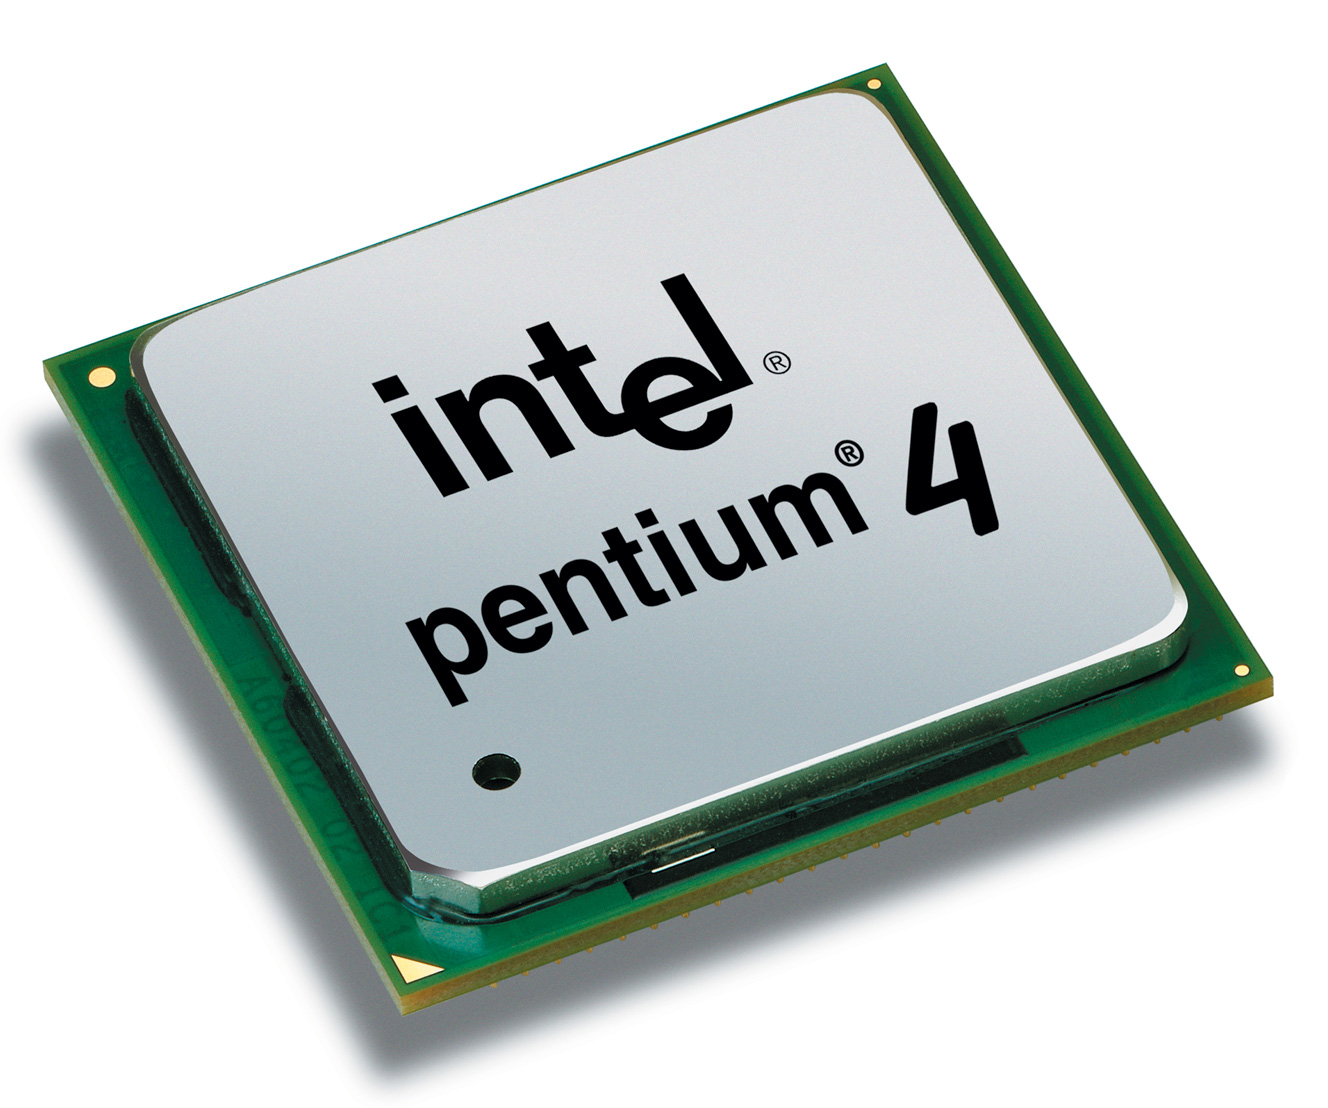 Intel Pentium 4 1.9 GHz / 256KB / 400 MHz socket 478 CPU processor SL5WG